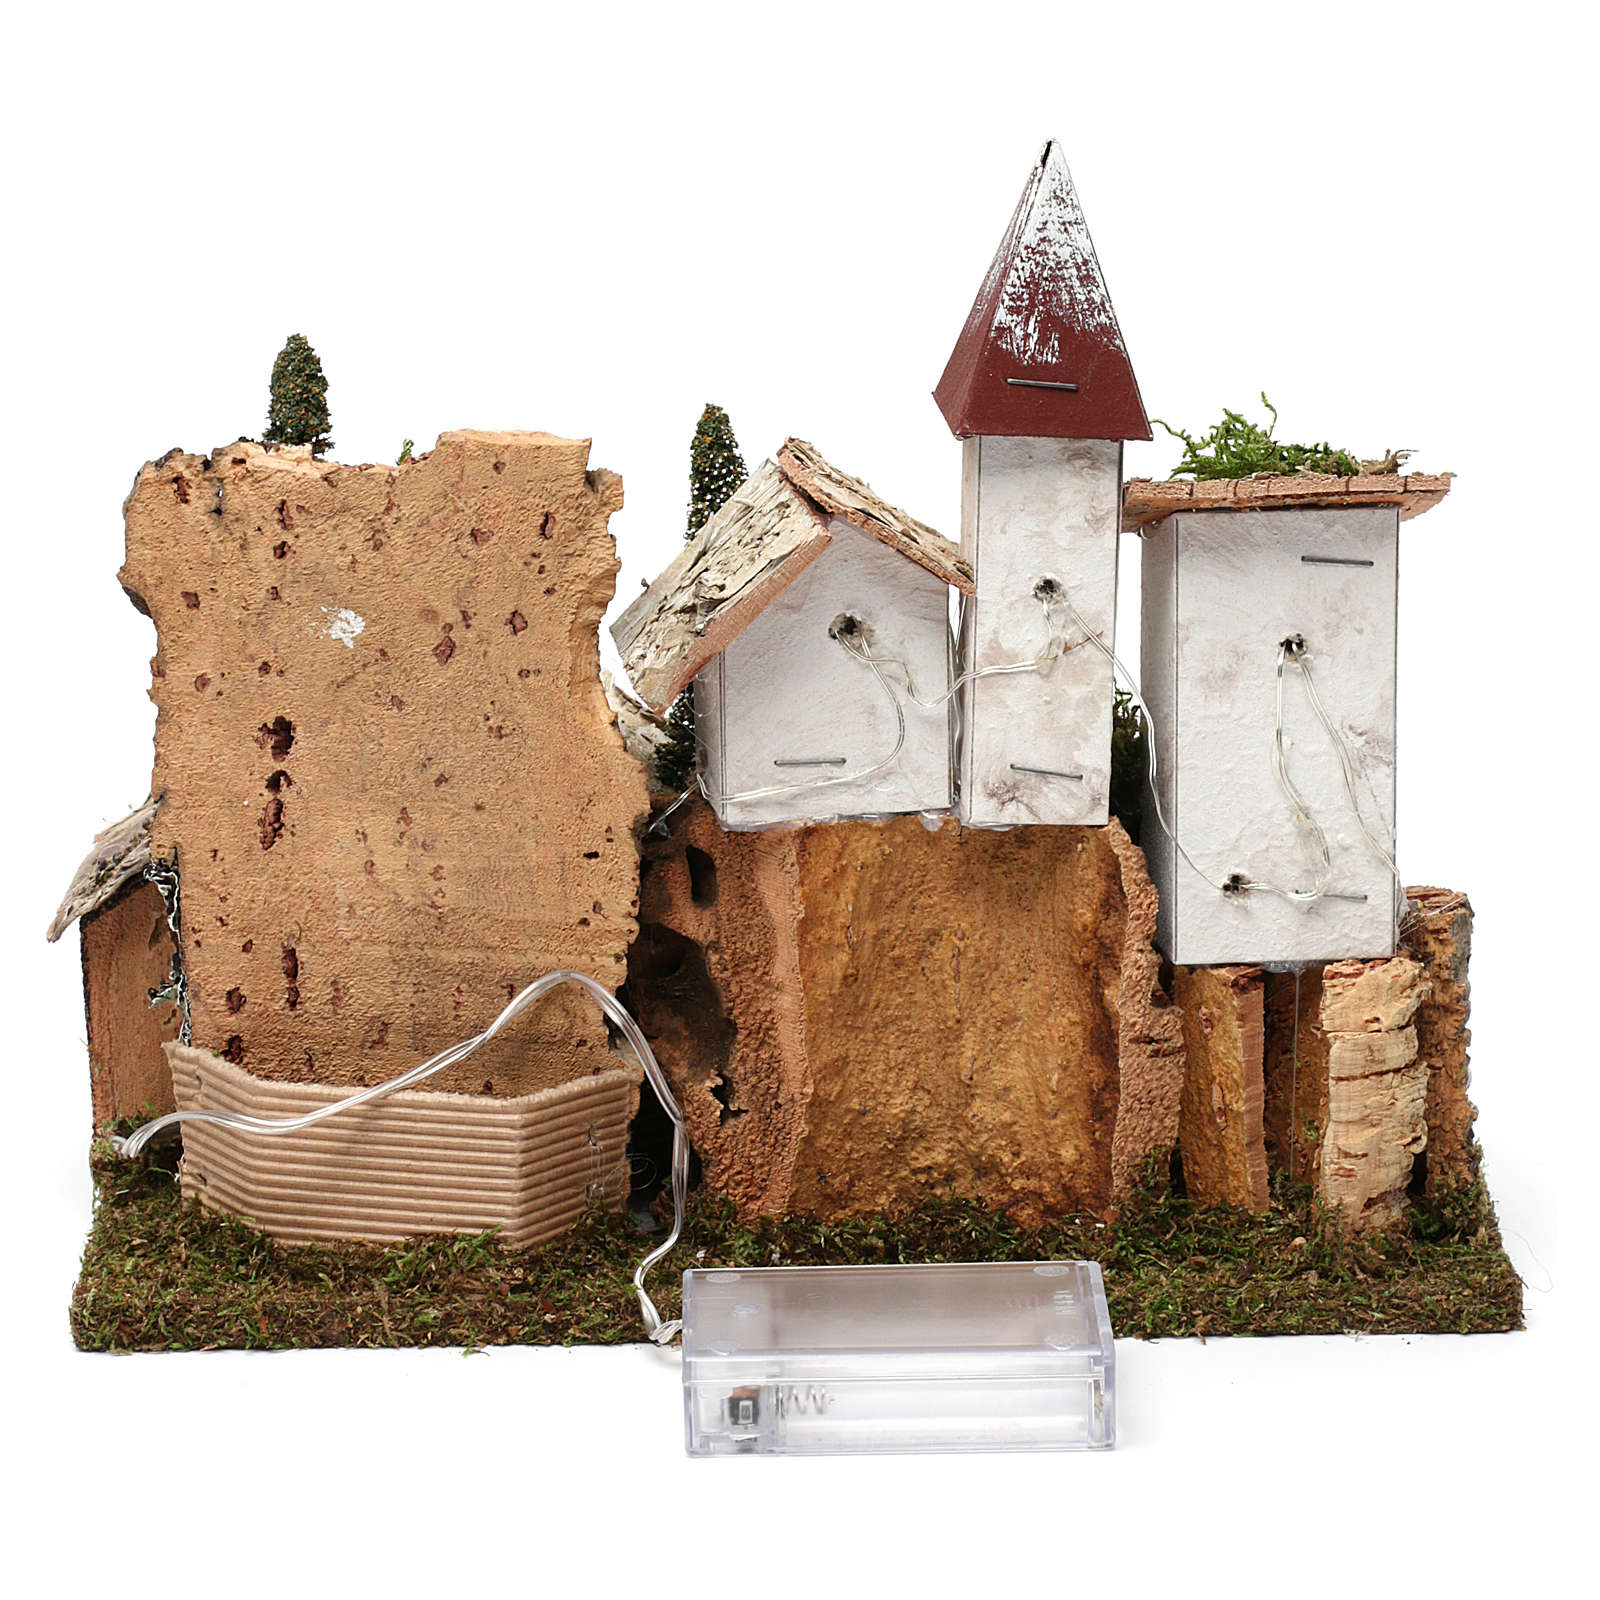 Nordic nativity scene village  20x25x20 cm 4